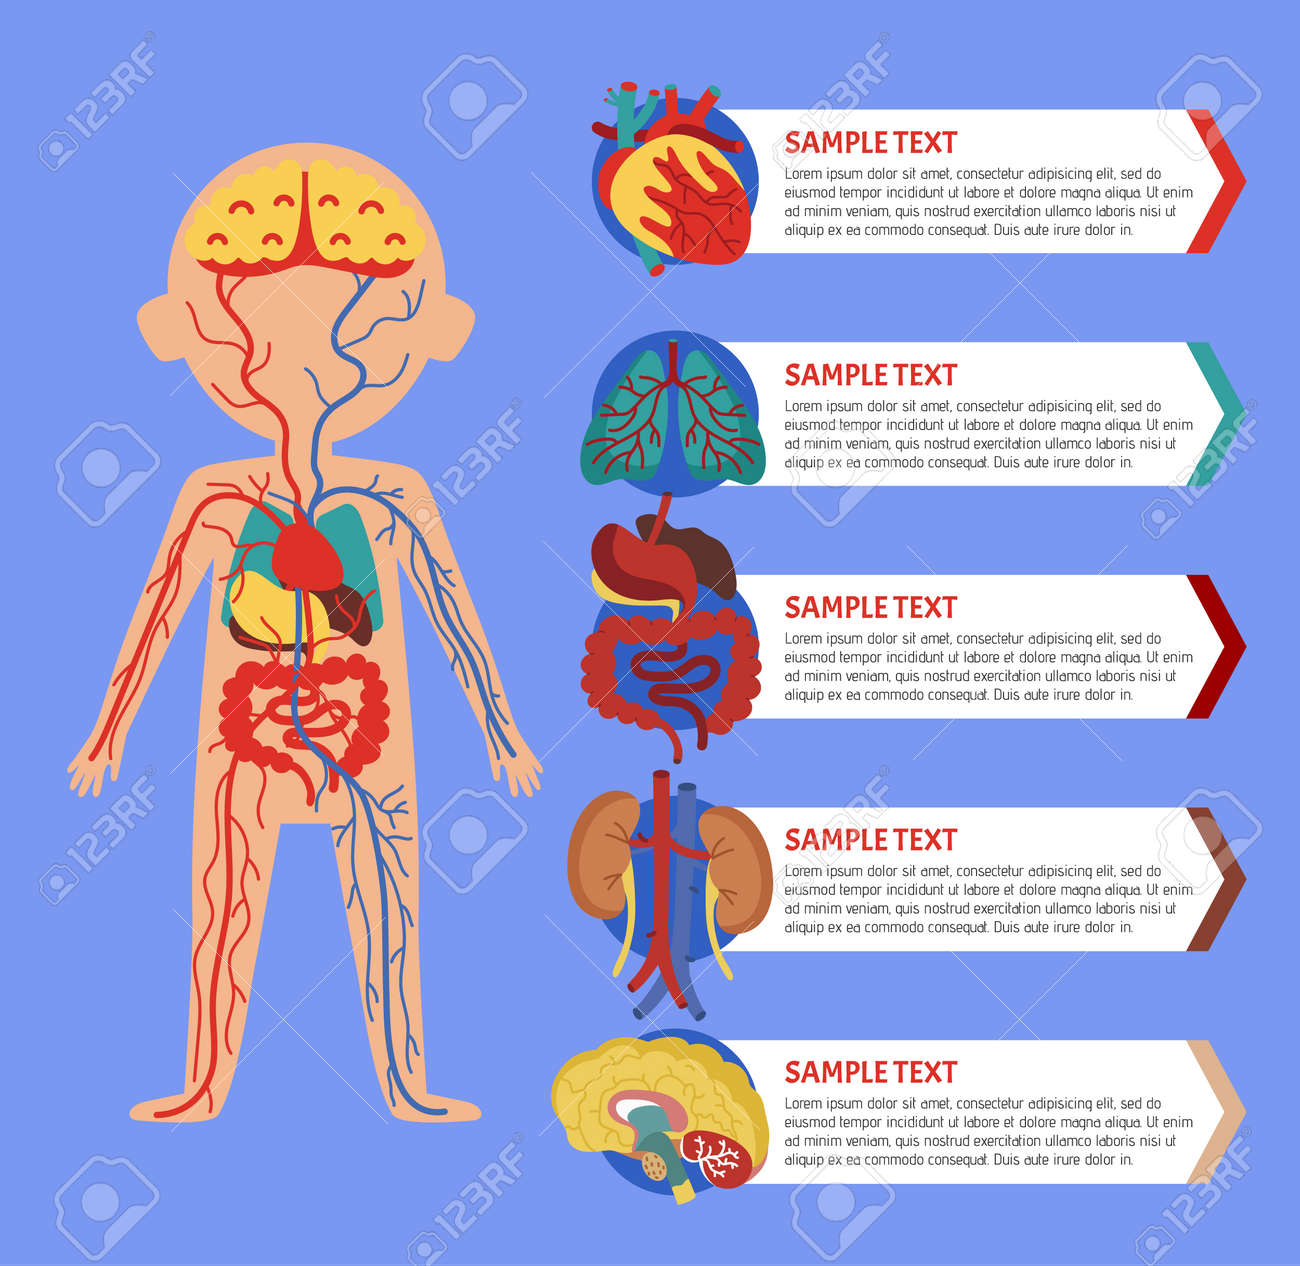 Health Medical Poster With Human Body Anatomy Kidney Lung